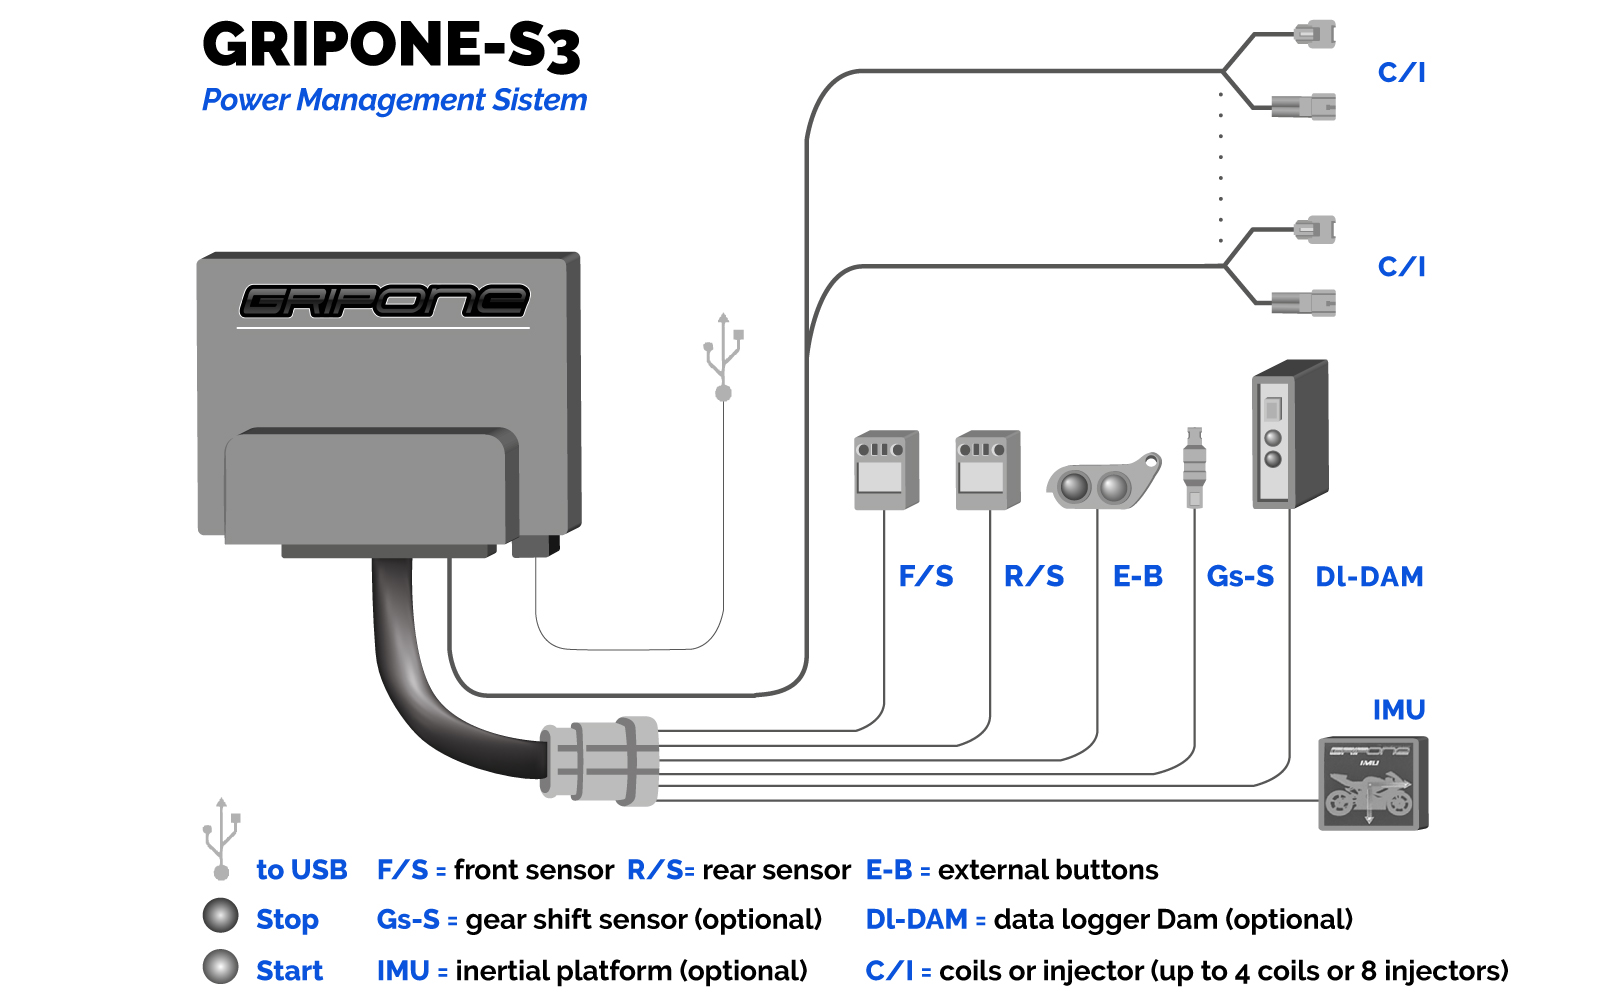 Kit Gripone S3 To Build Usb Power Injector For External Hard Drives Circuit Diagram Connection